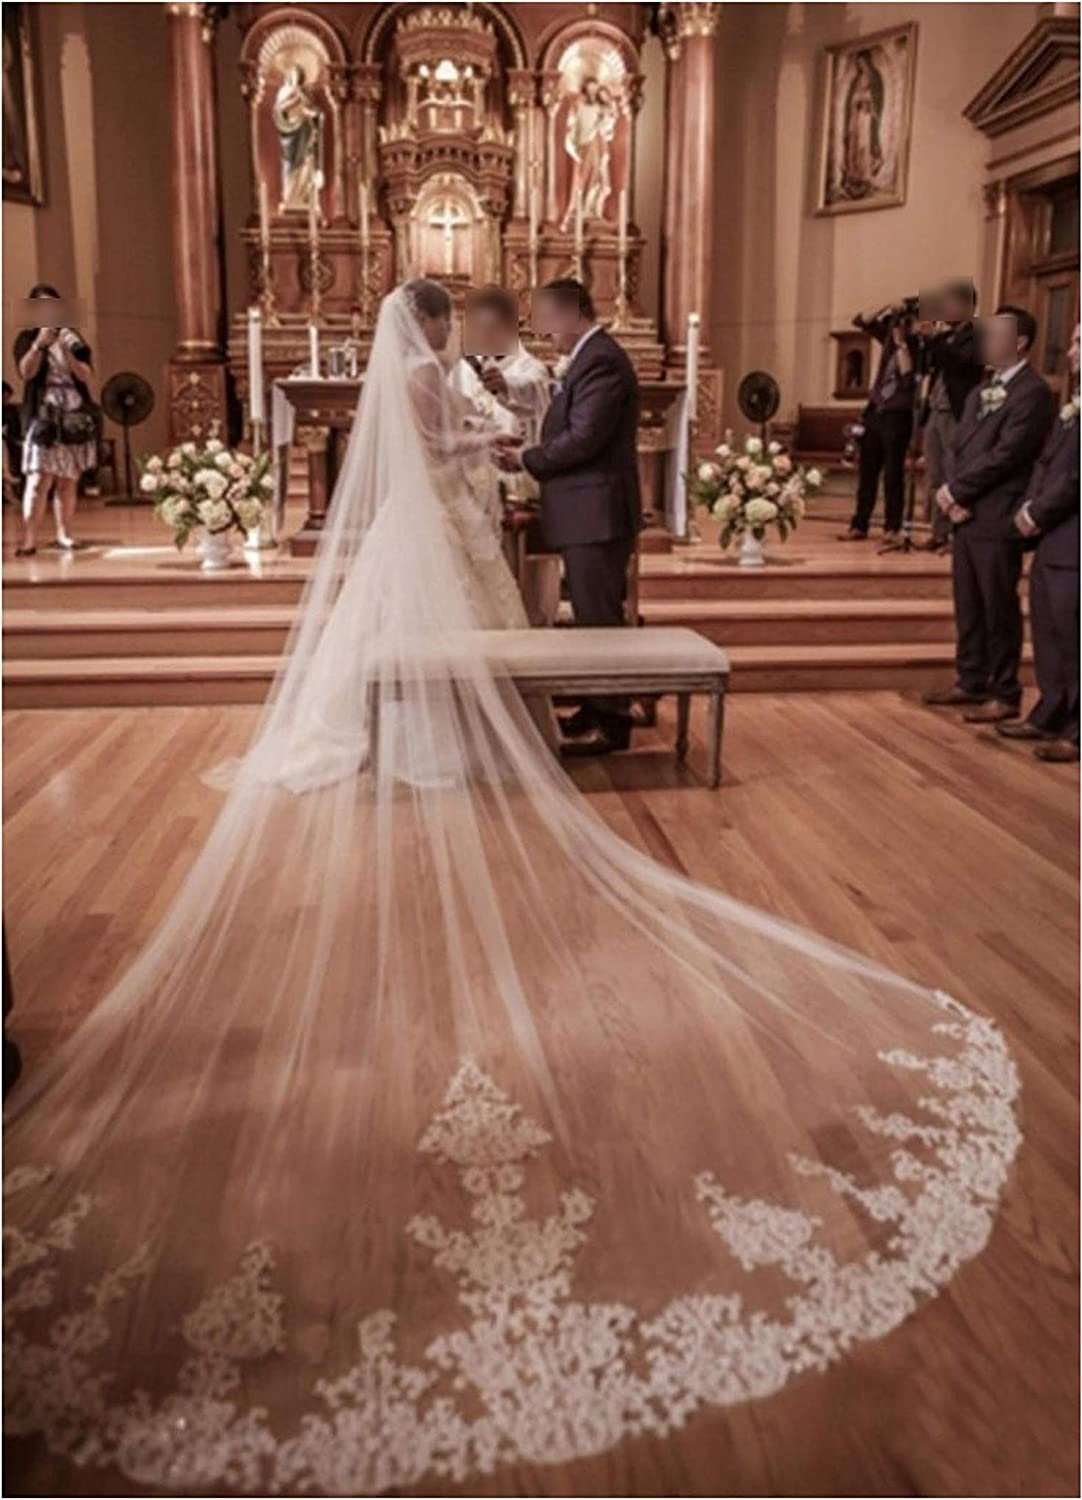 2019 New 4 Meters One Layer Lace Tulle Long Wedding Veil New White Ivory 4 M Bridal Veil with Comb Velos De Novia,White